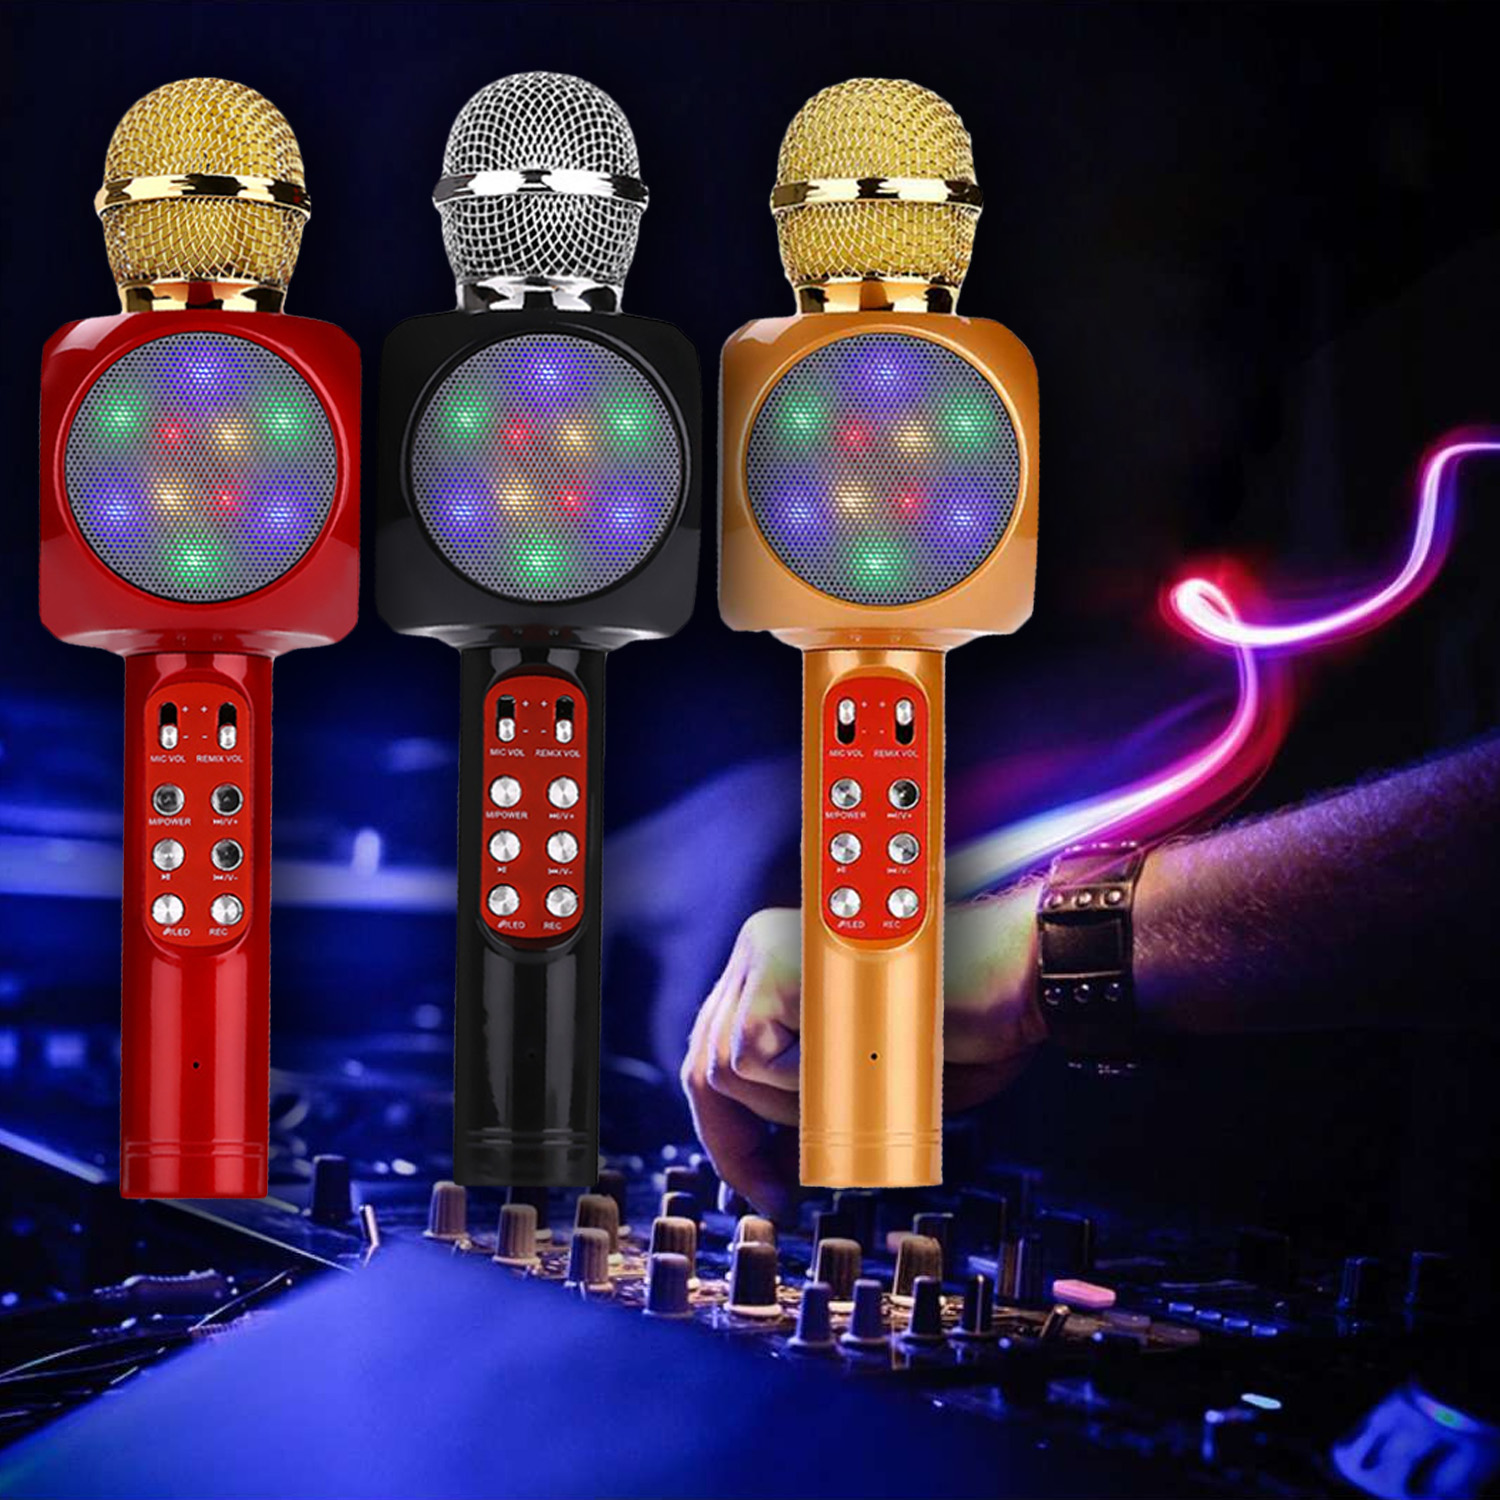 Karaoke Microphone Portable Wireless Bluetooth Speaker Built-in LED Lights FM Radio Handheld Glowing Karaoke Mic Kids Music Toy